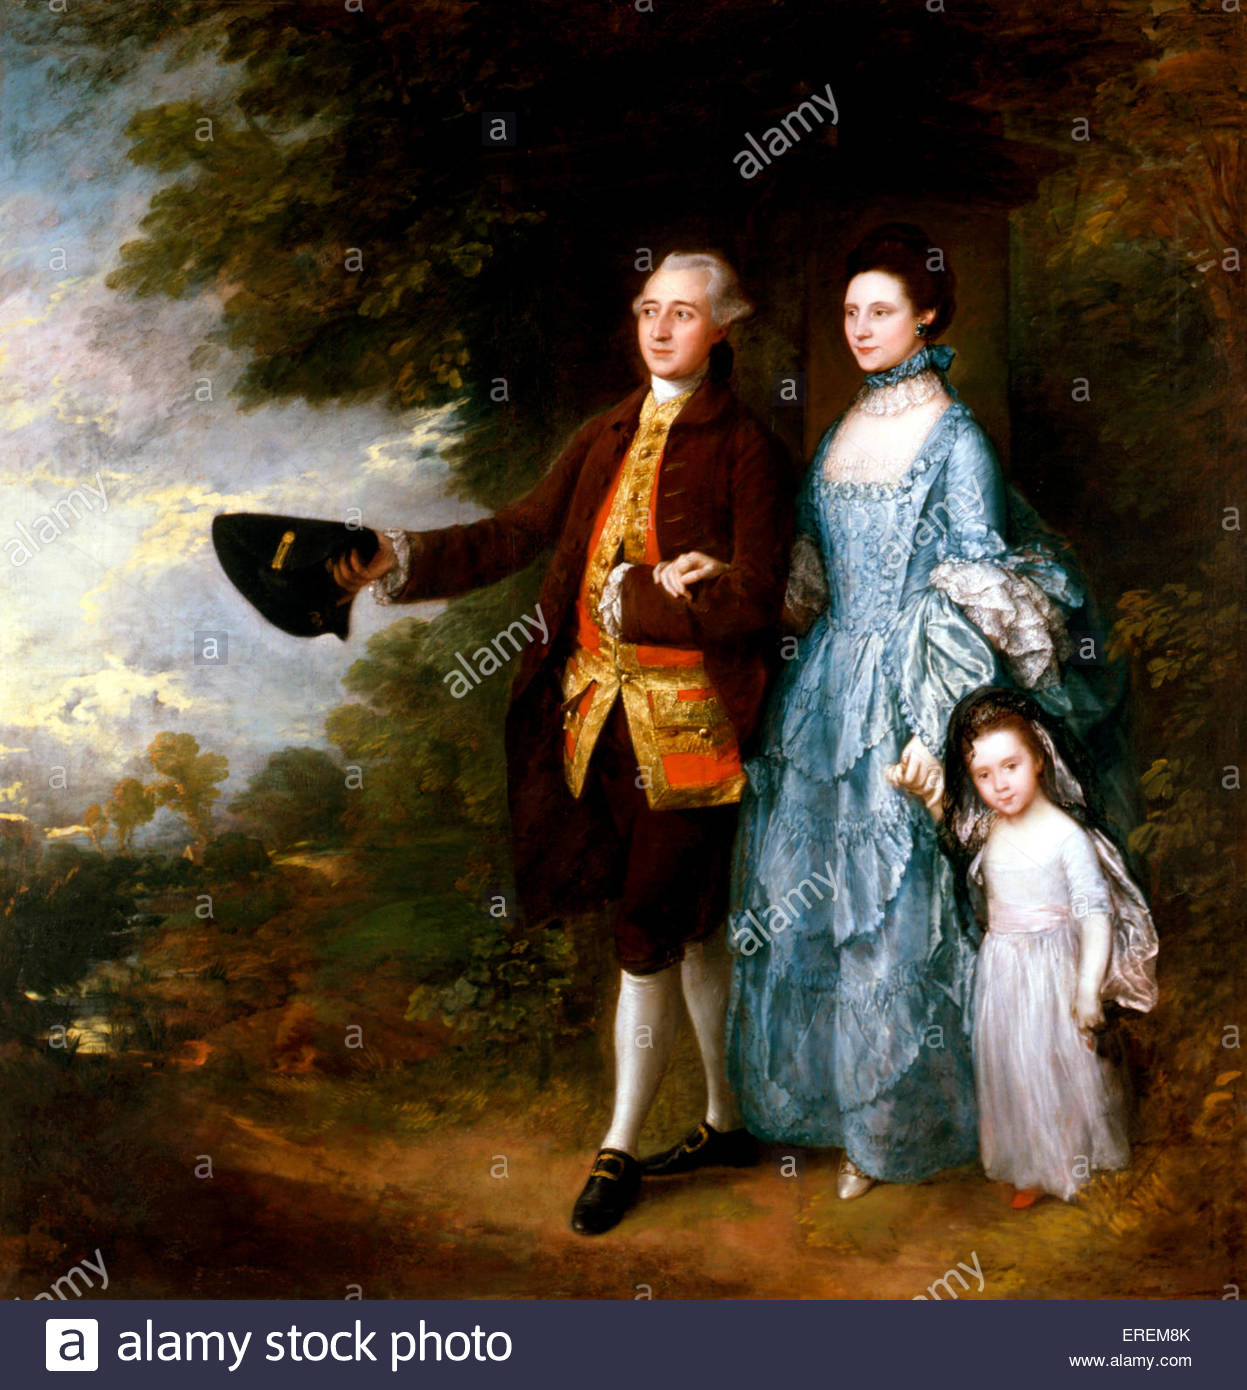 The Byam Family by Thomas Gainsborough, English portrait and landscape painter (1727-1788).Oil on canvas,around - Stock Image